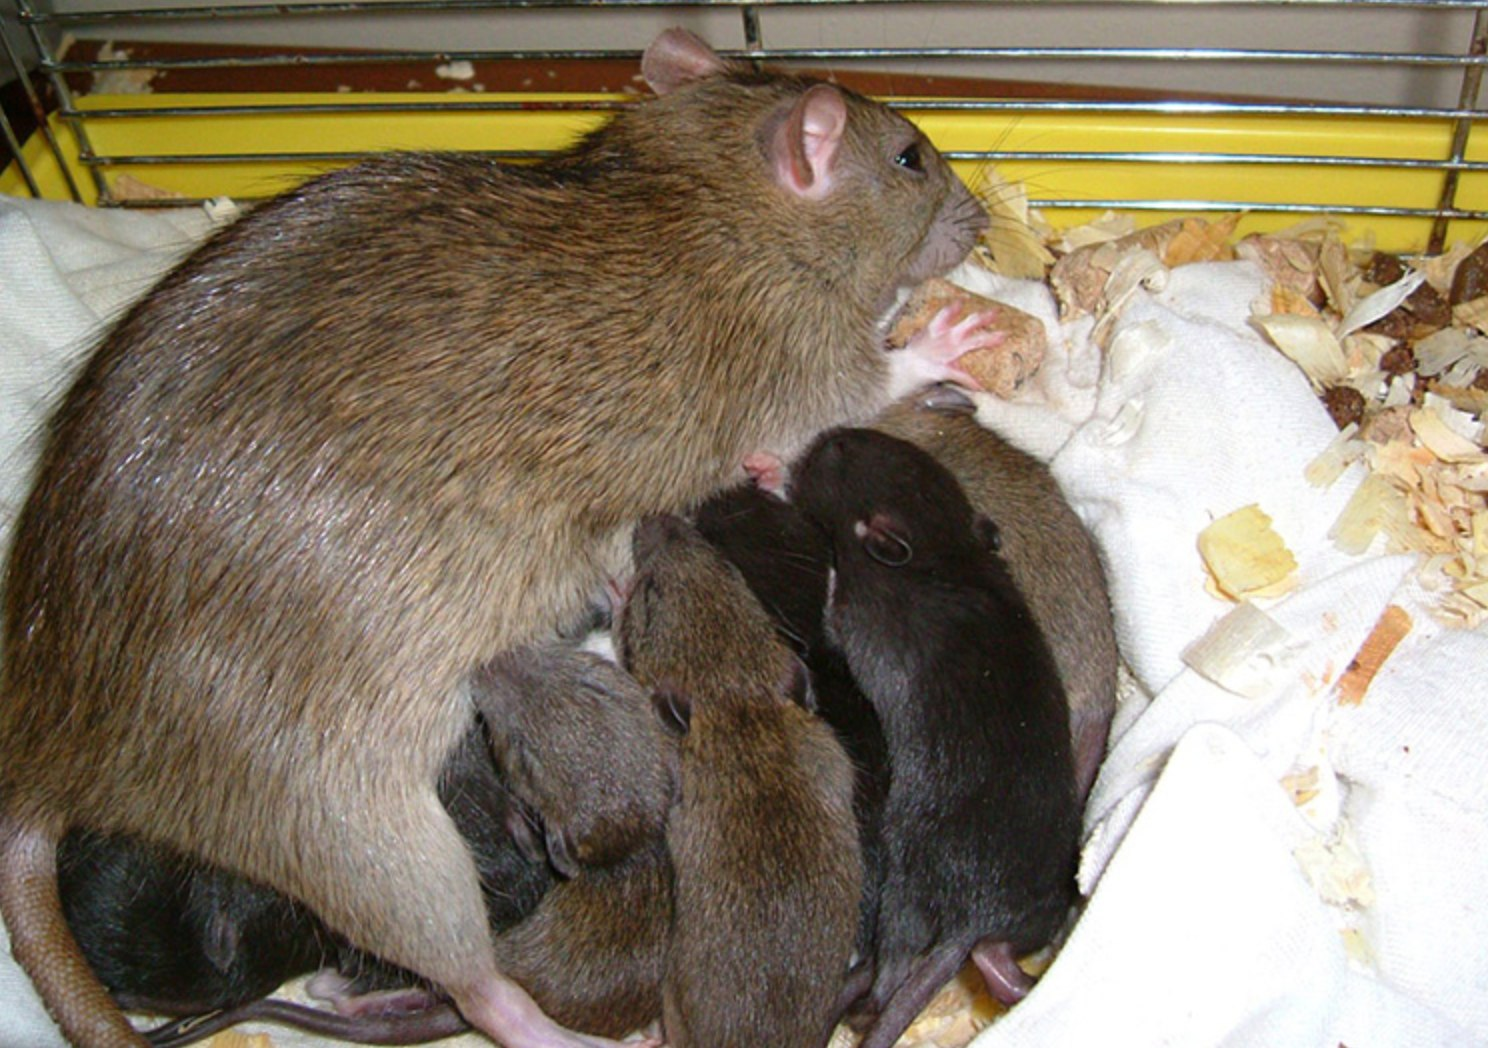 A mother rat with her babies